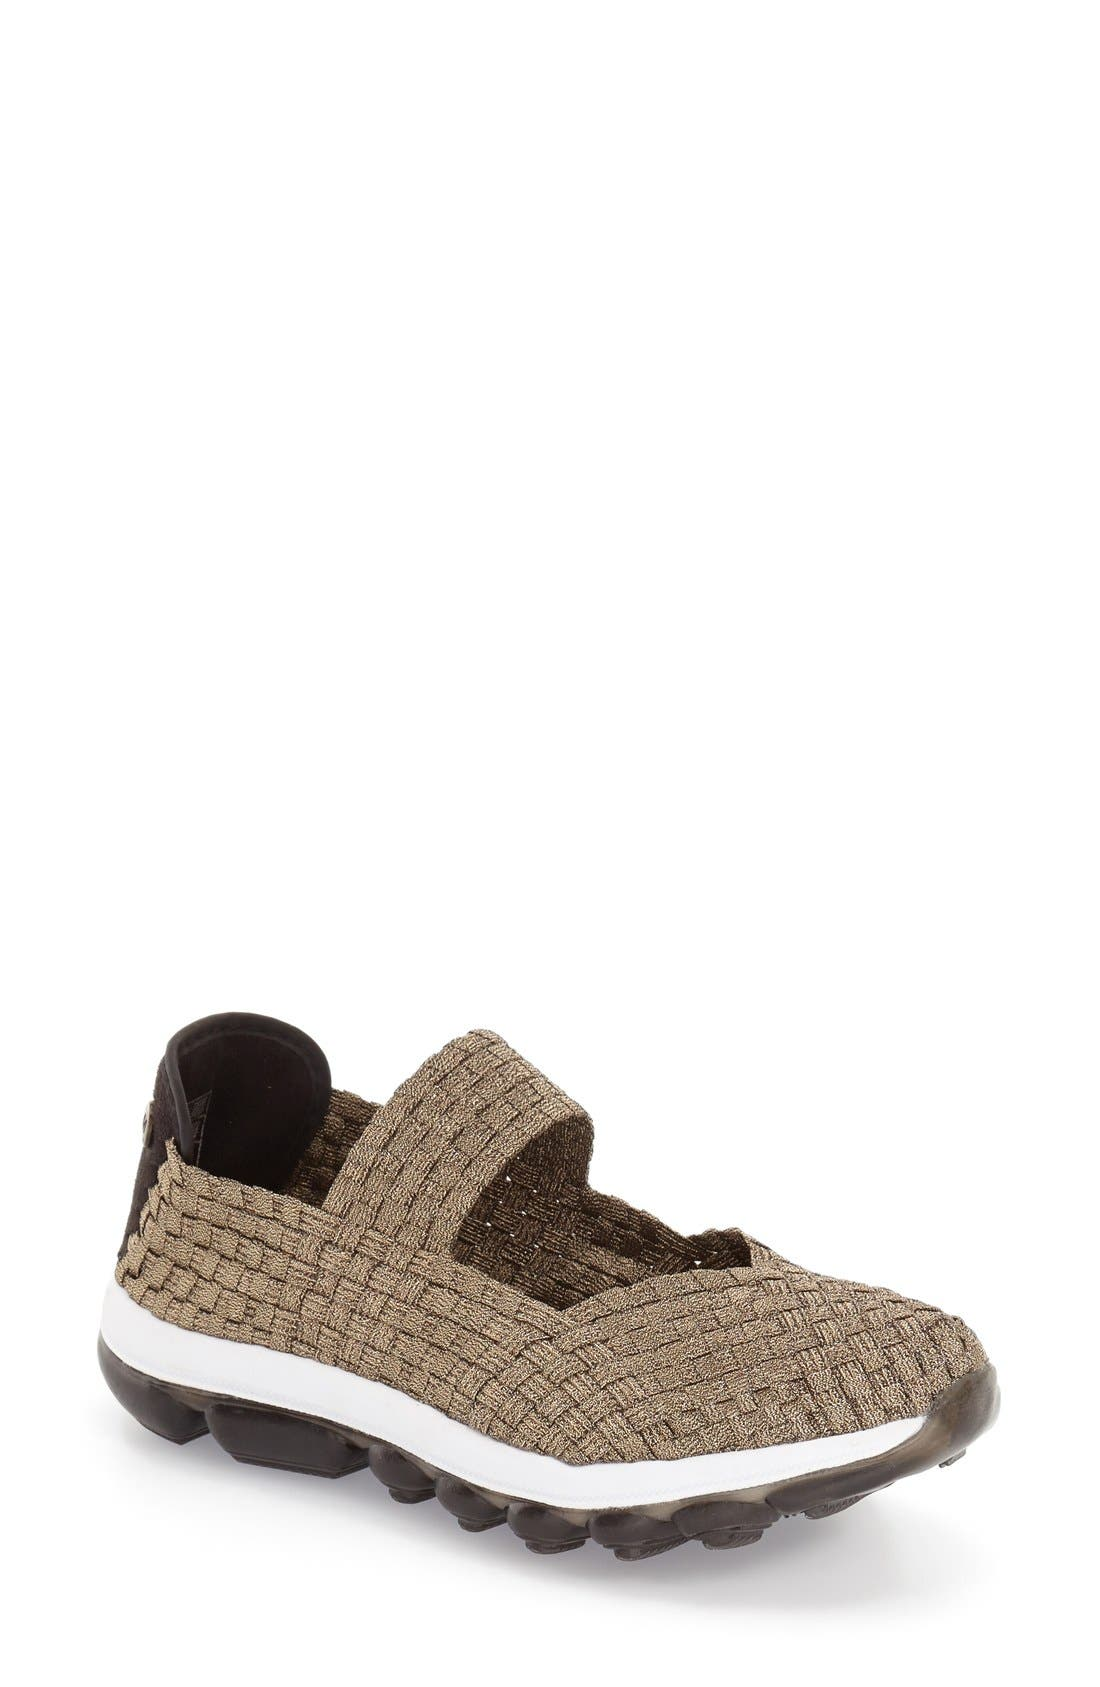 BERNIE MEV. 'Gummies Charm' Stretch Woven Slip-On Sneaker